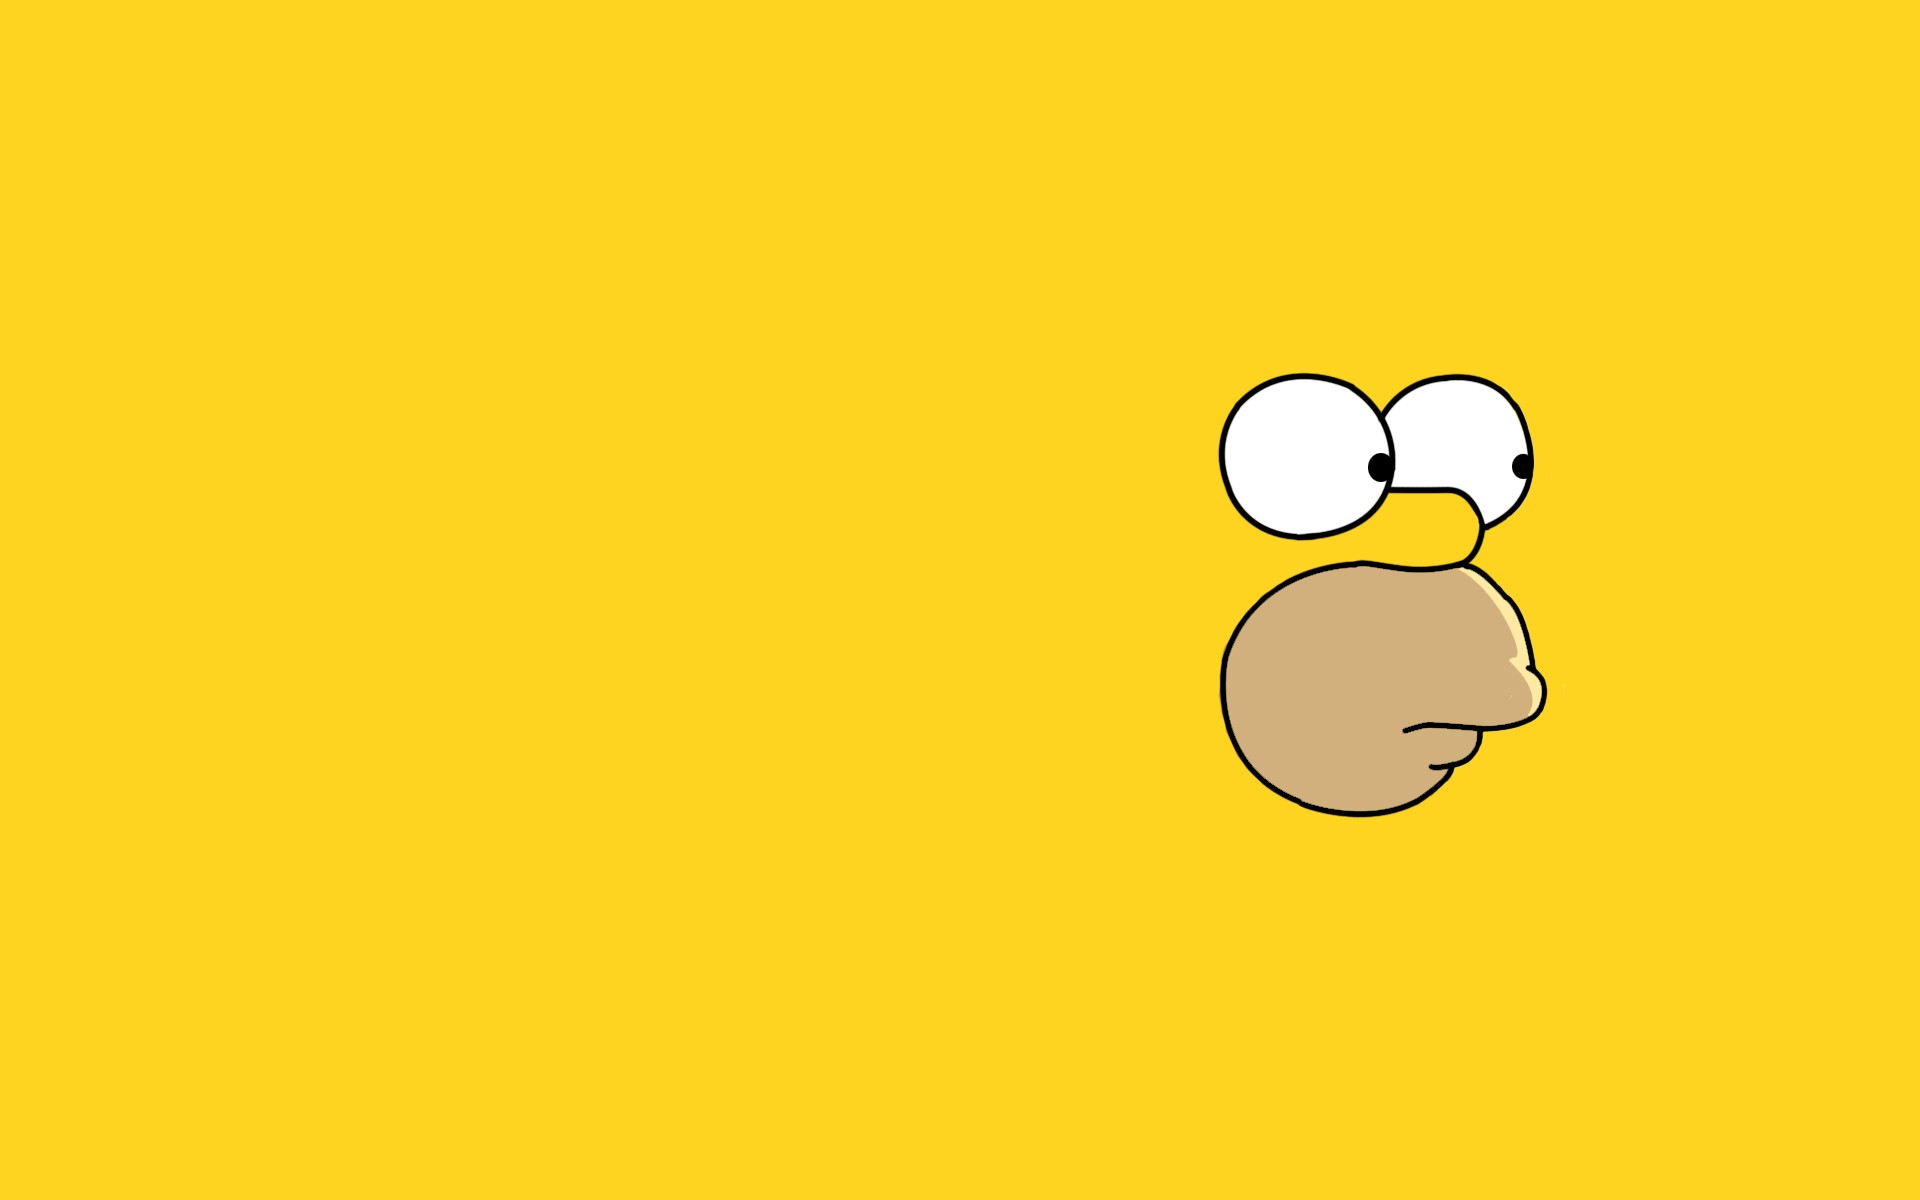 The Simpsons Wallpapers High Resolution And Quality Download